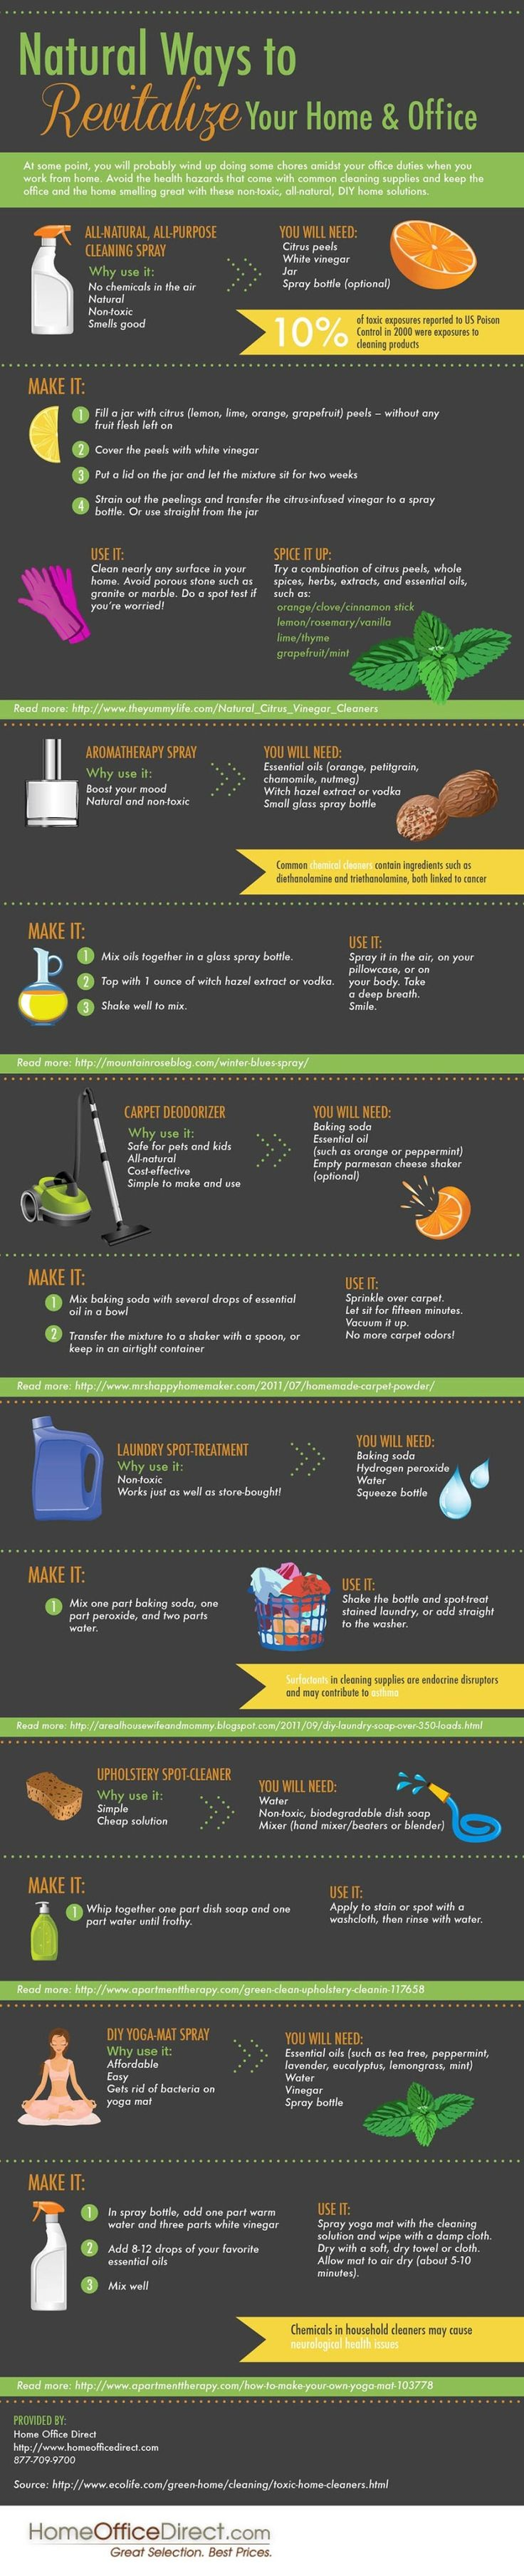 #DIY Cleaning Products to Revitalize your #Office. #MindfulLiving OurMLN.com